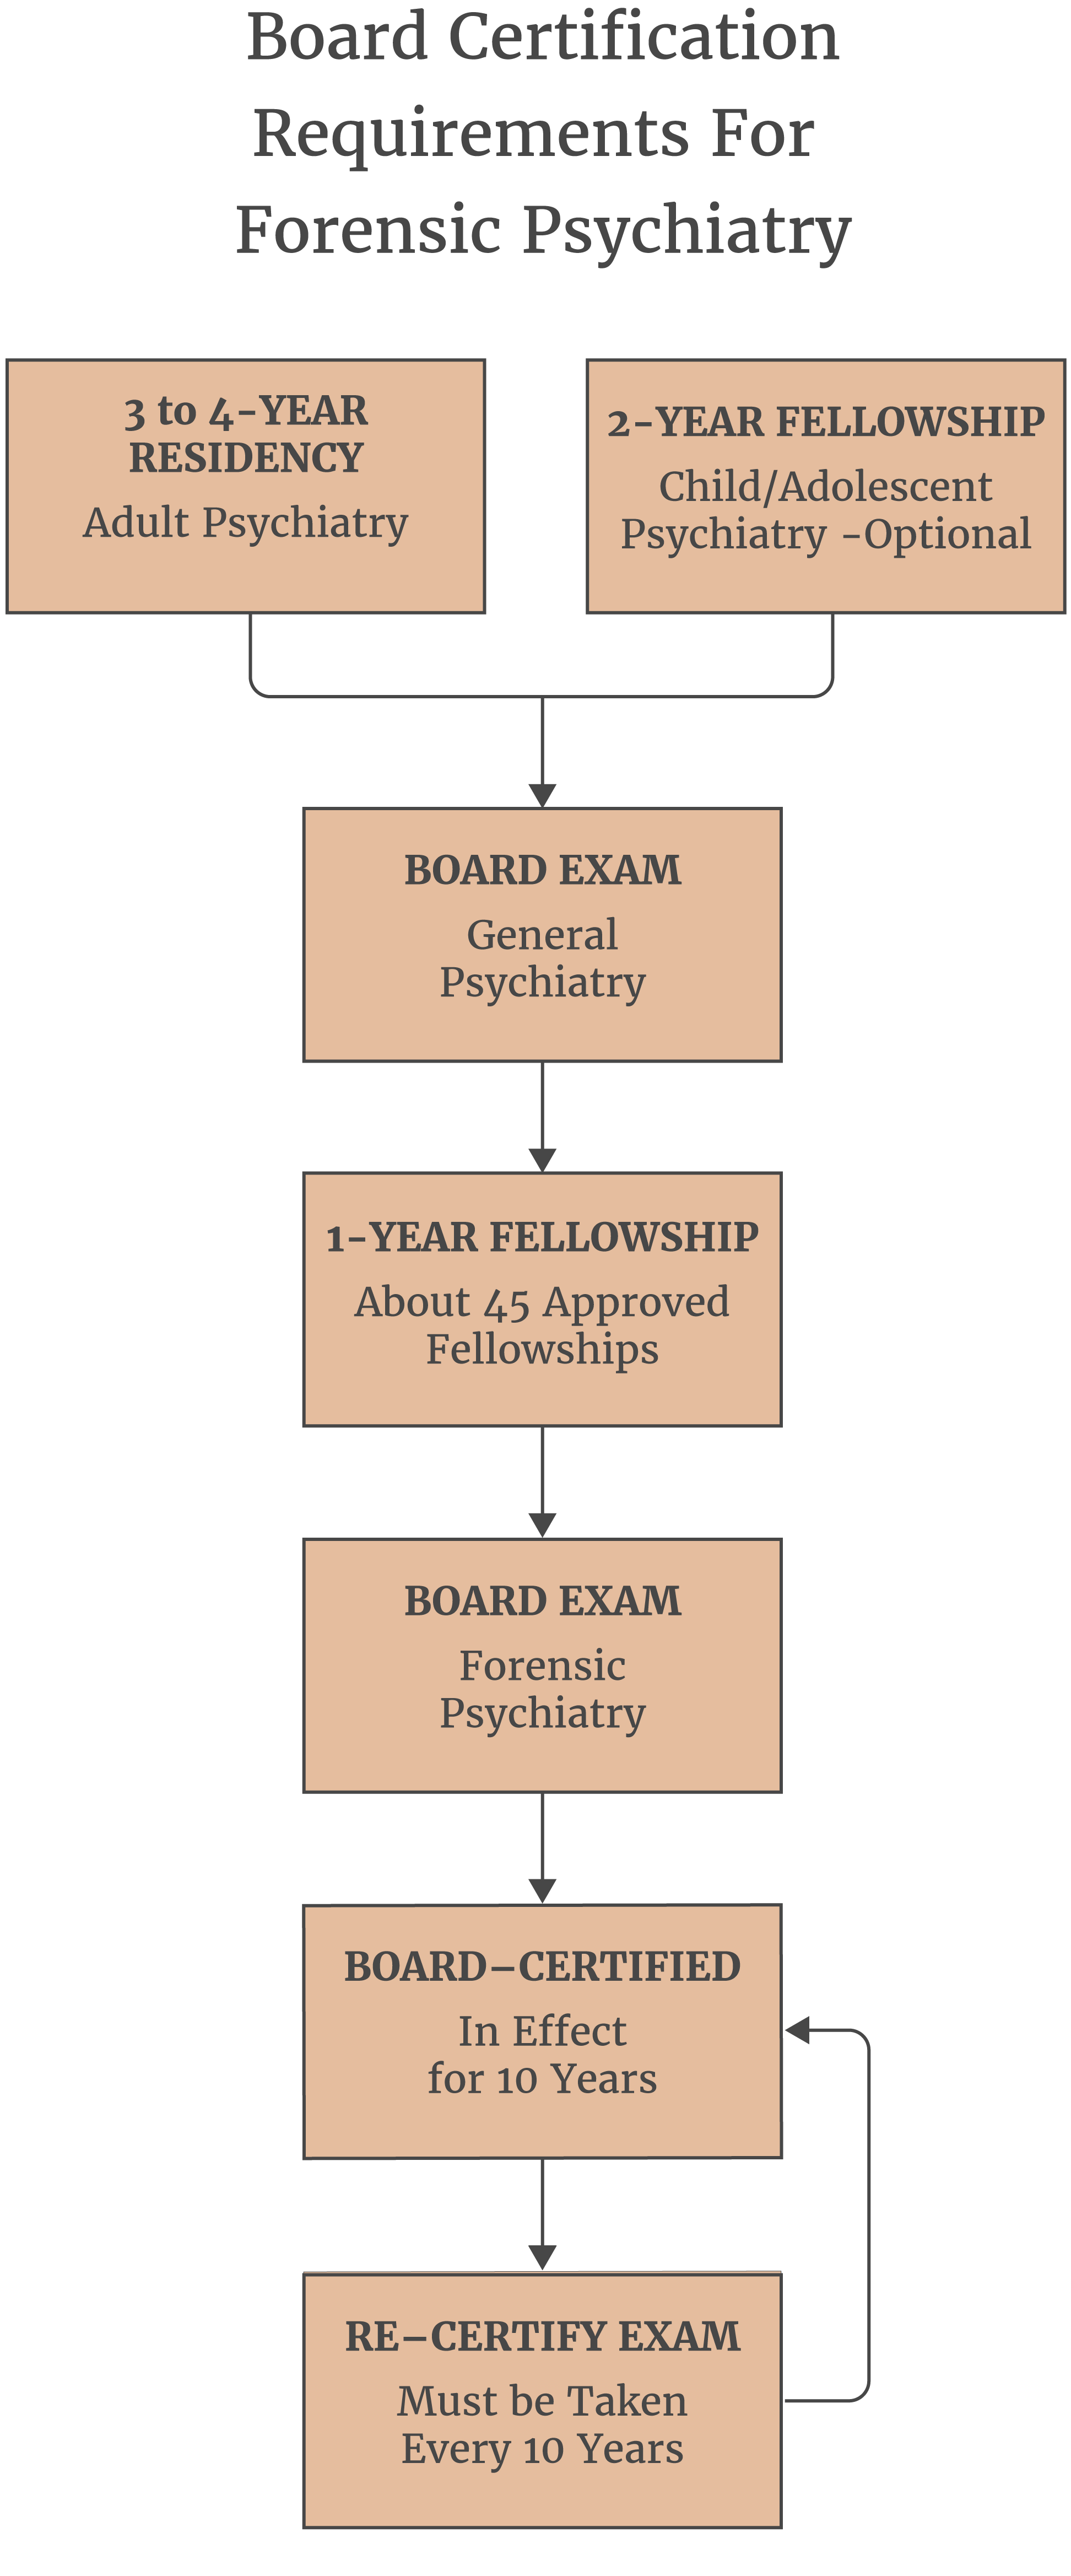 Board Certification Requirements For Forensic Psychiatry Stephen P